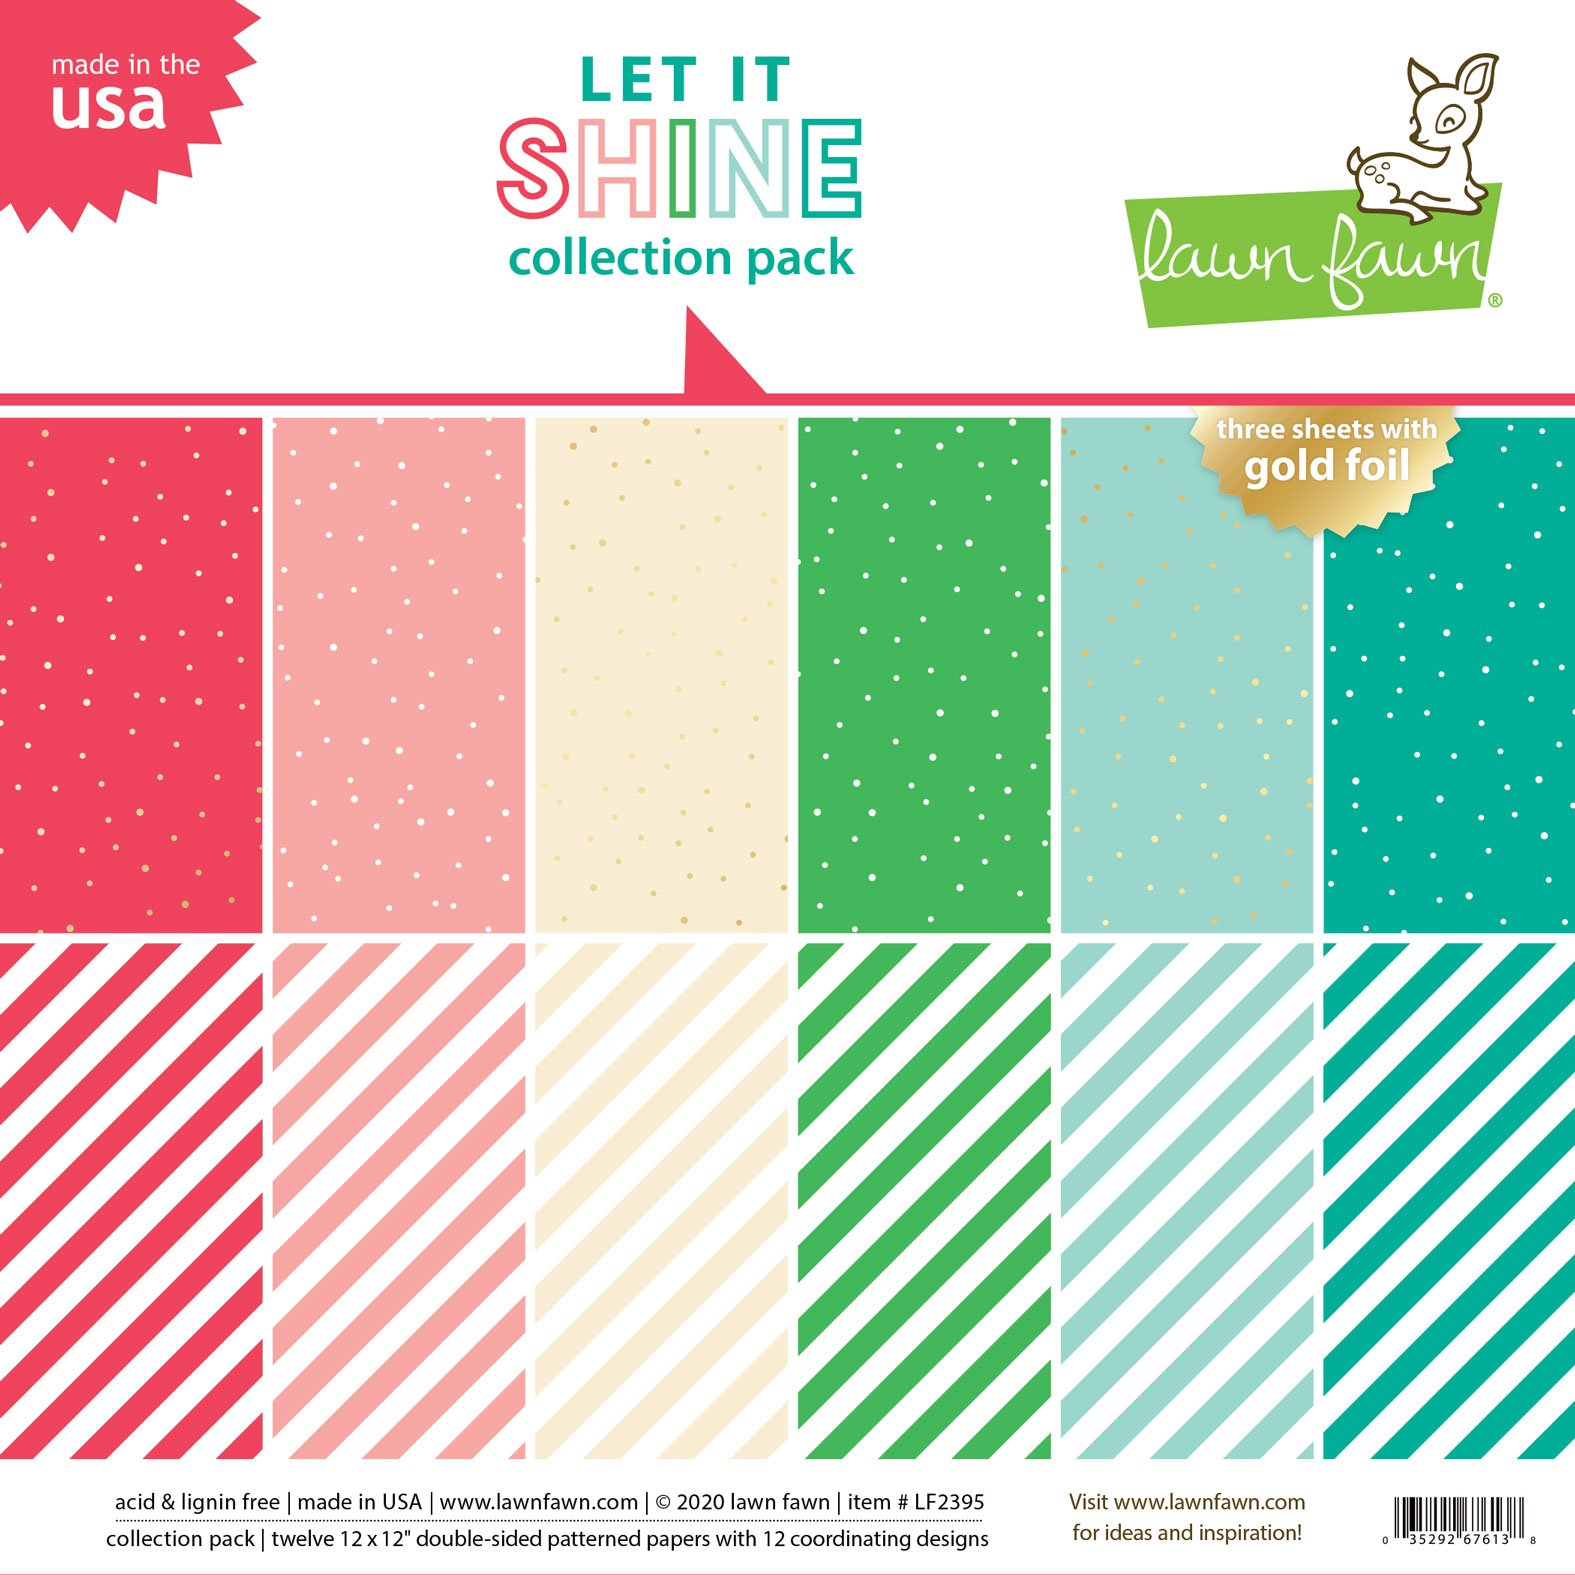 Lawn Fawn Let It Shine - 12x12 Collection Pack